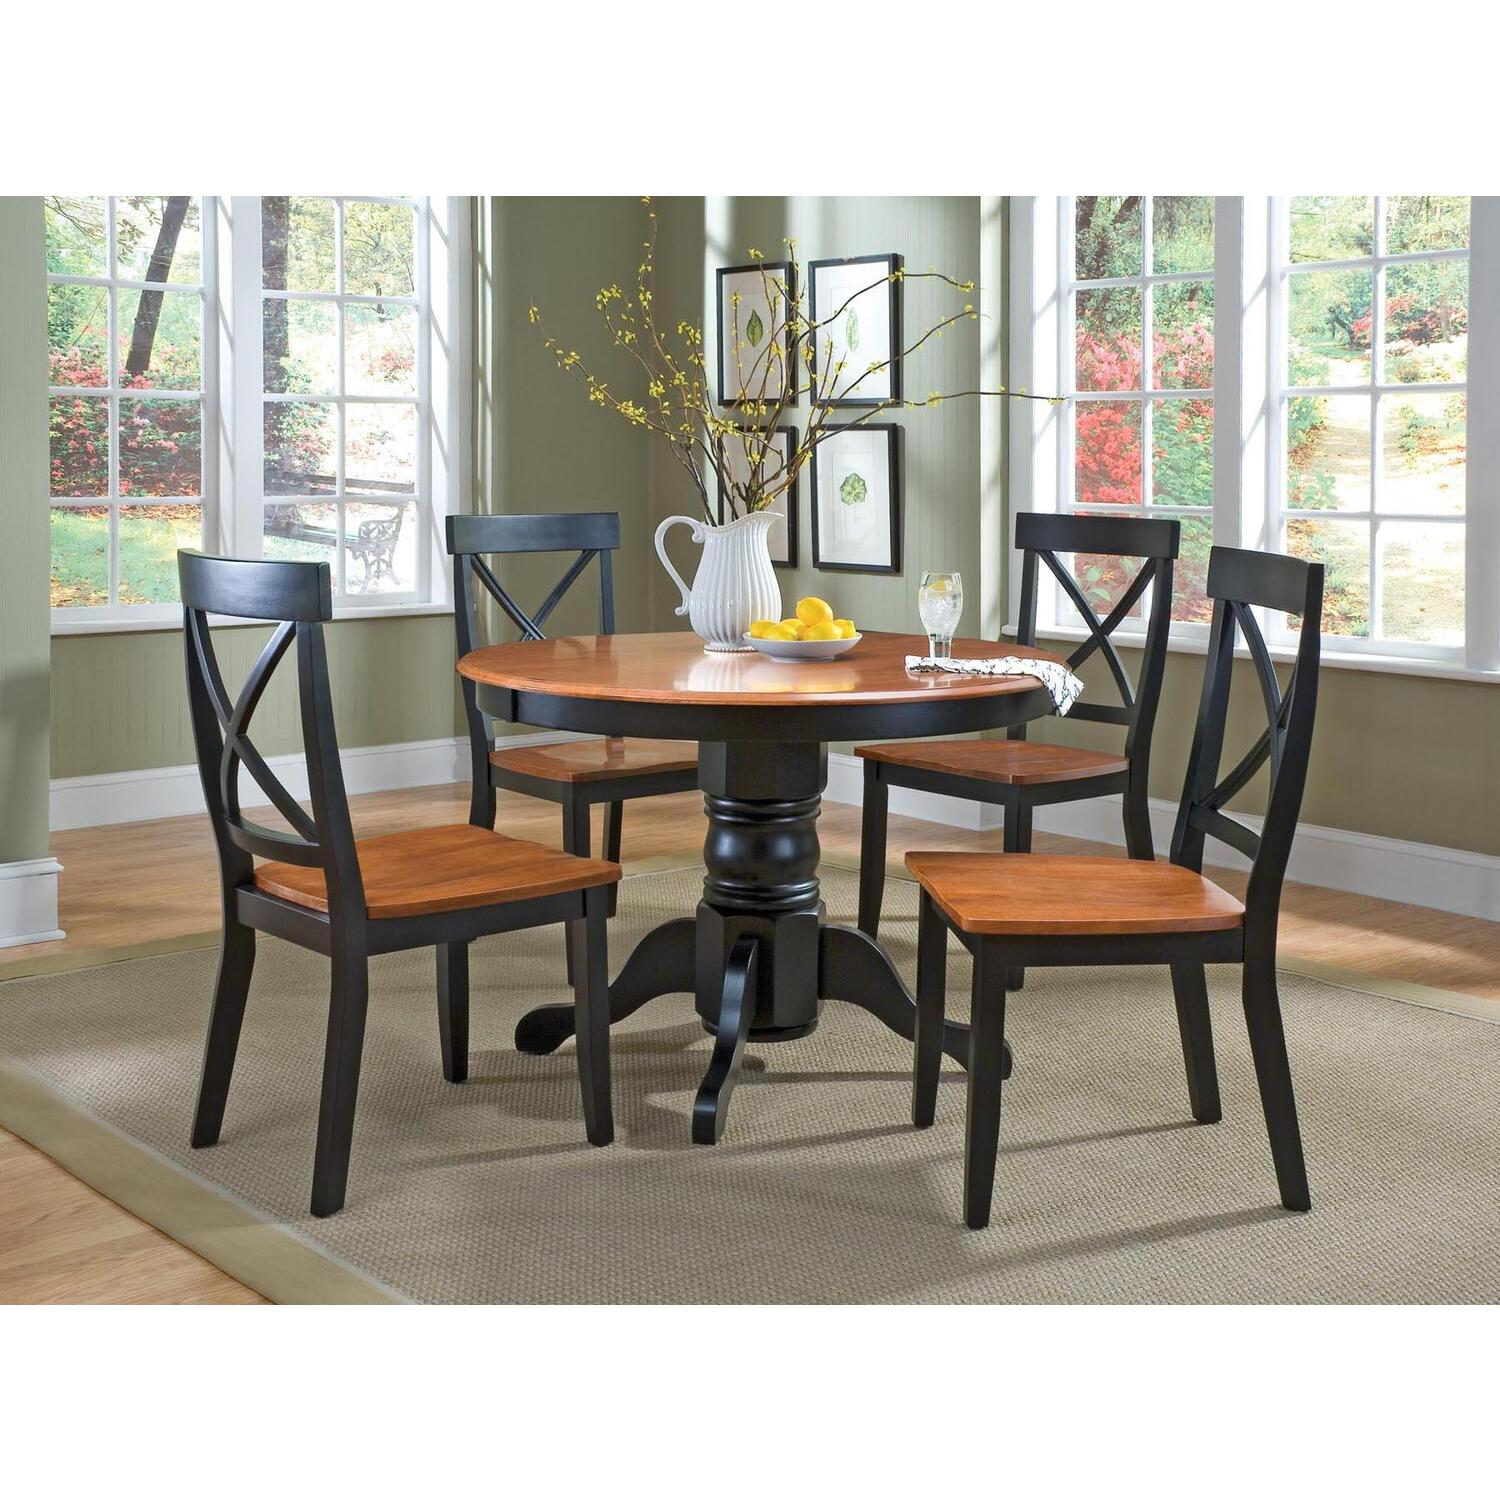 Furniture home goods appliances athletic gear fitness for Round dining room table centerpieces